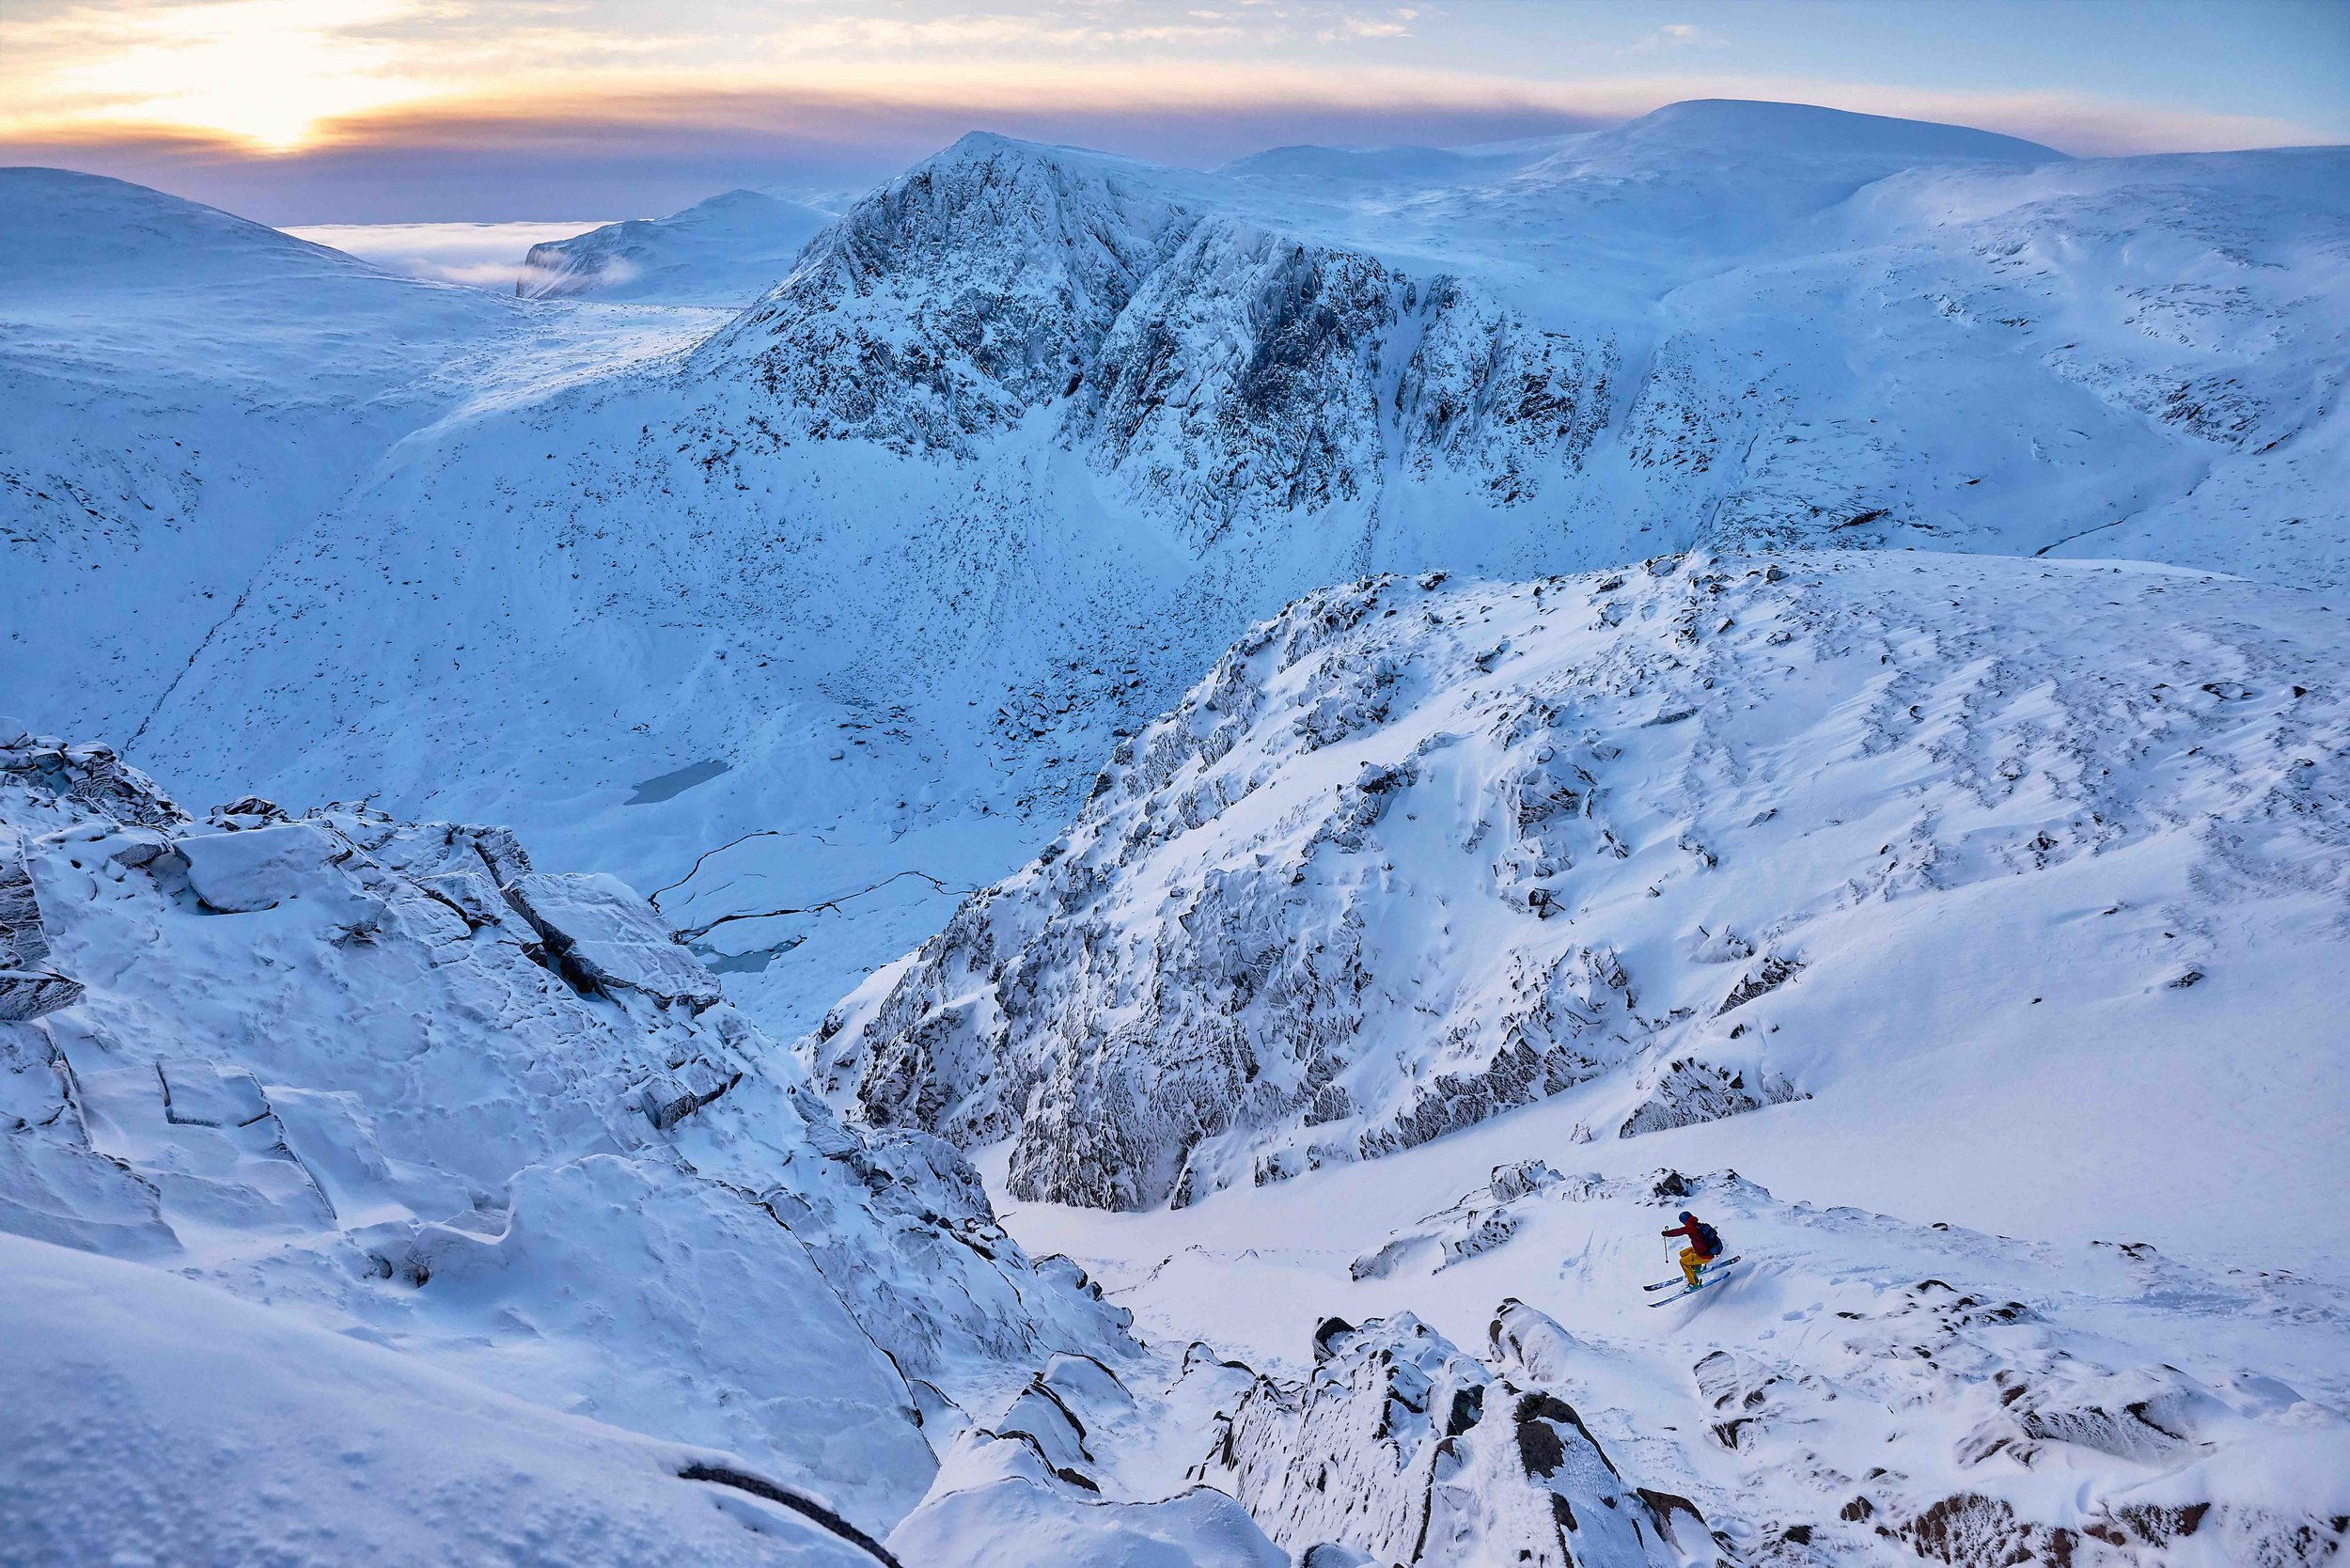 Pete Mackenzie dropping into Diagonal Gully as the sun rises over the Cairngorms